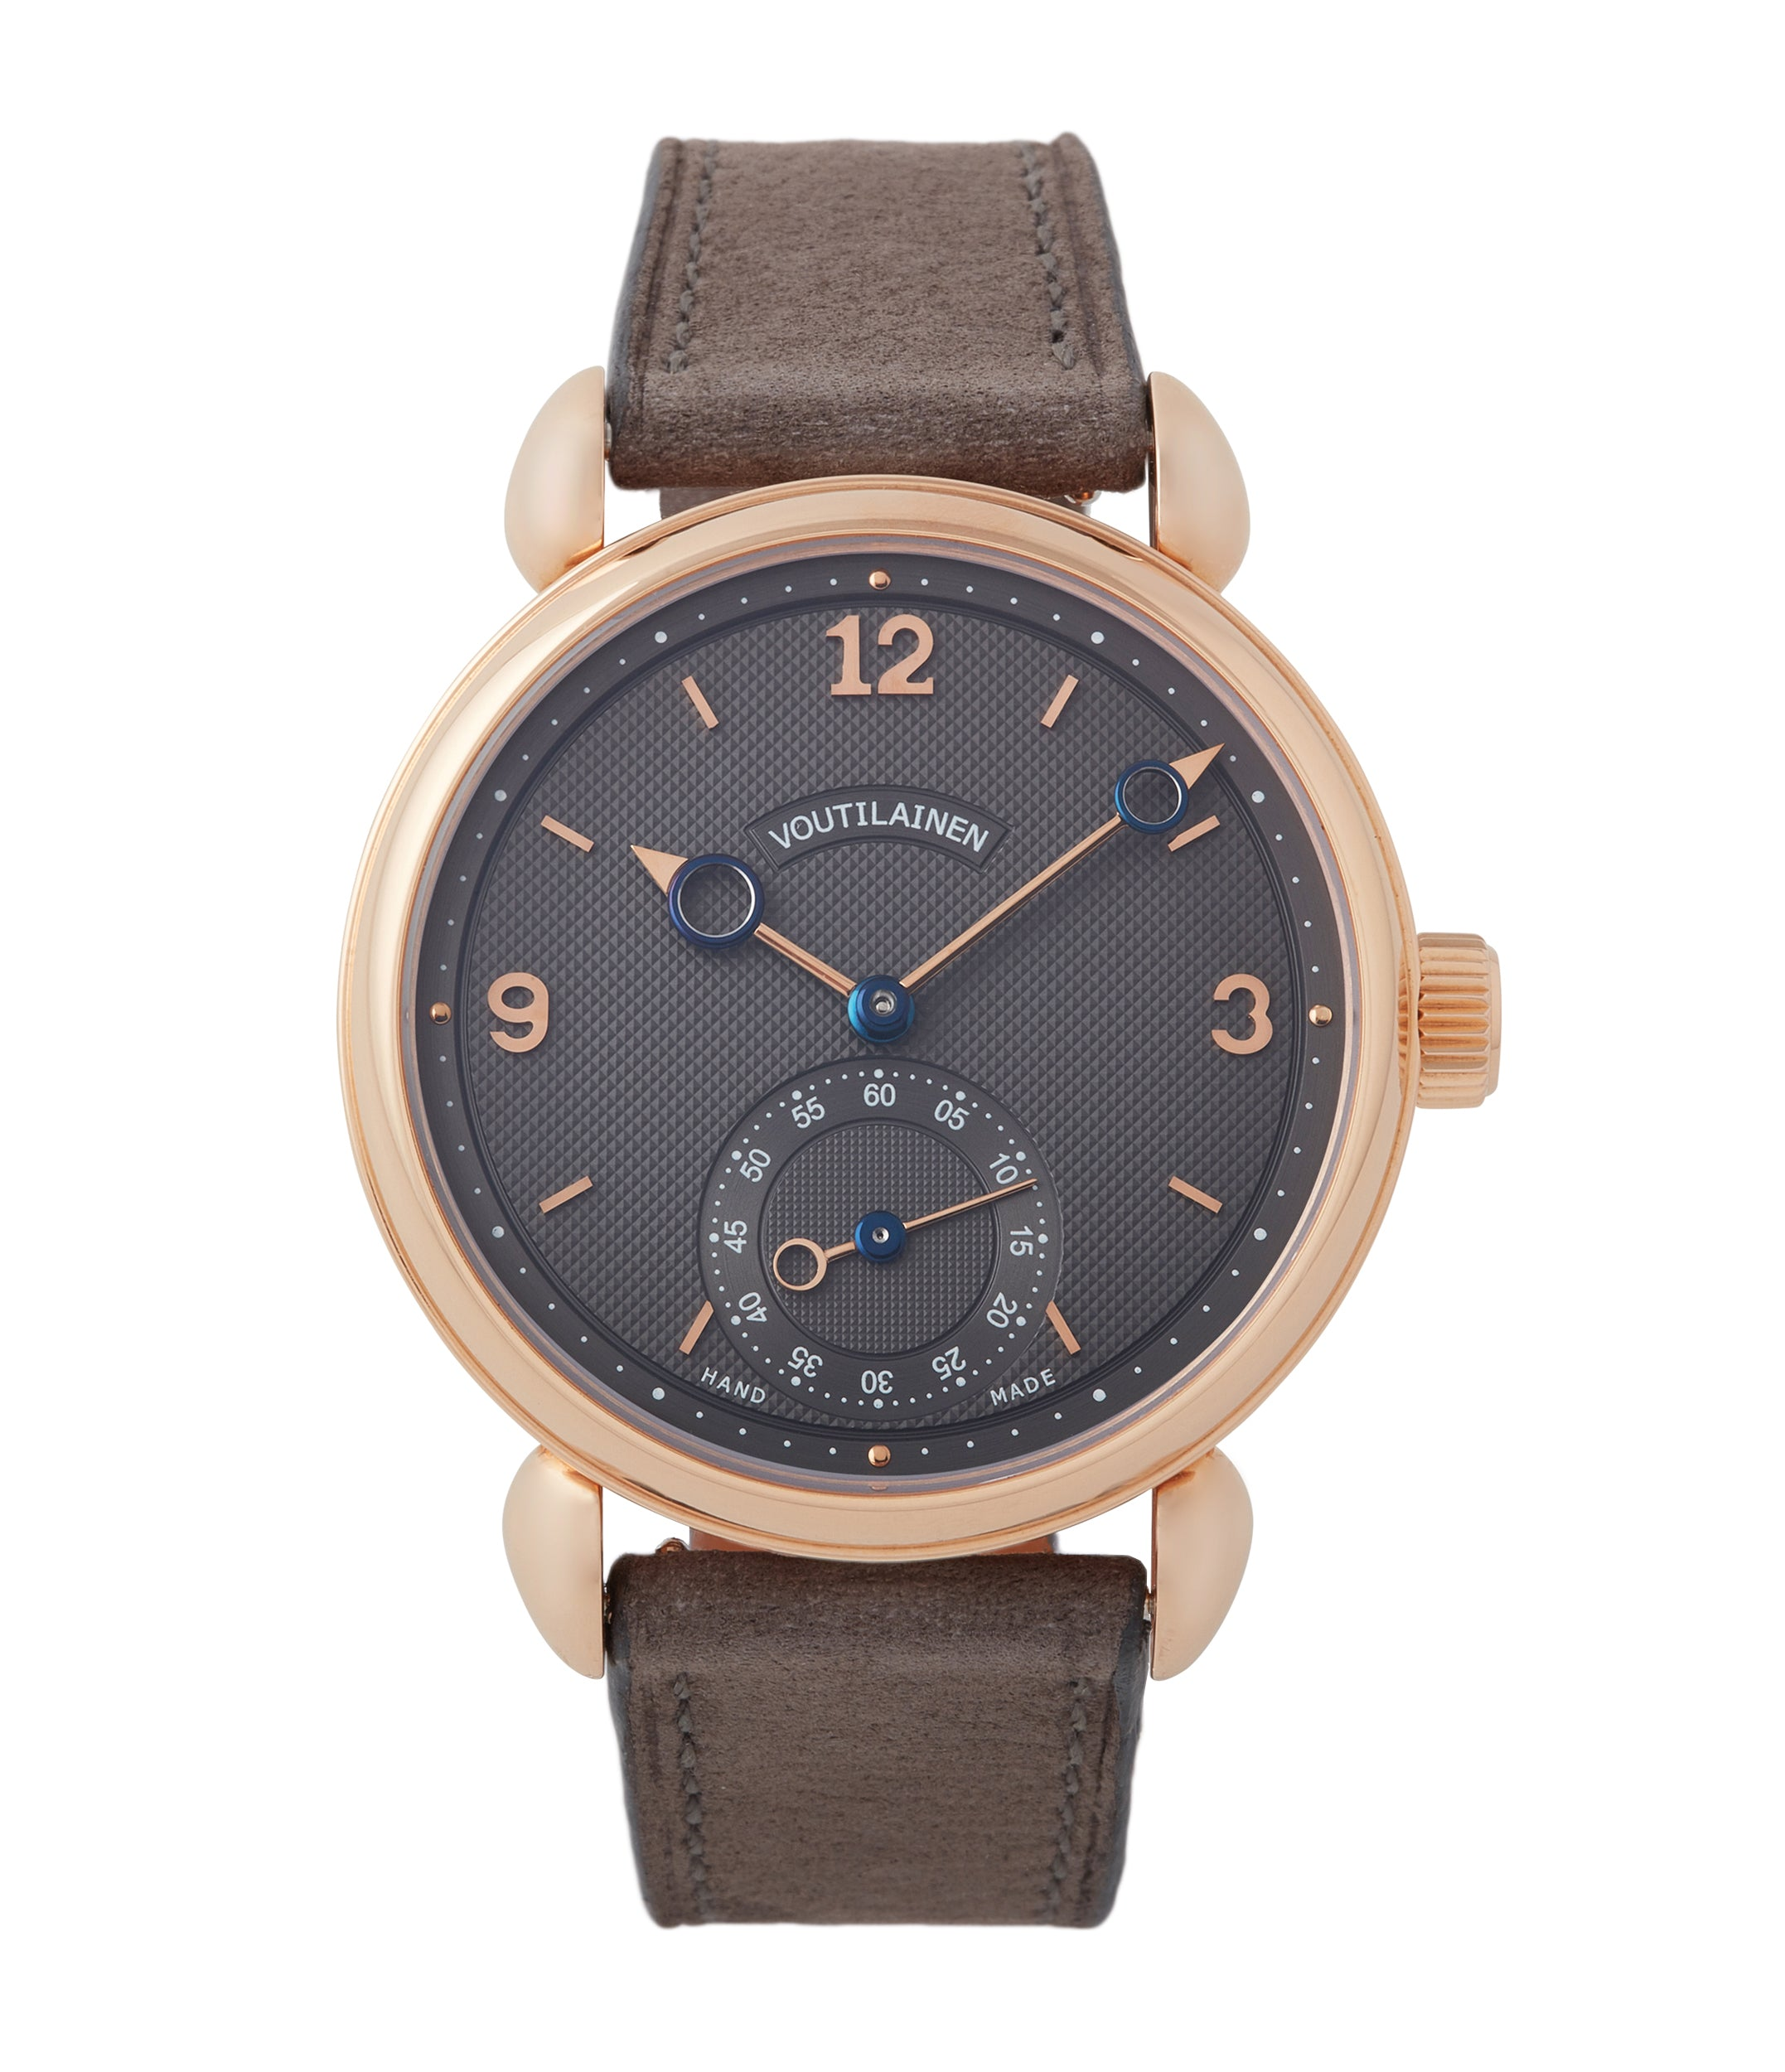 buy Kari Voutilainen Vingt-8 grey dial rose gold time-only watch independent watchmaker for sale online A Collected Man London UK specialist rare watches